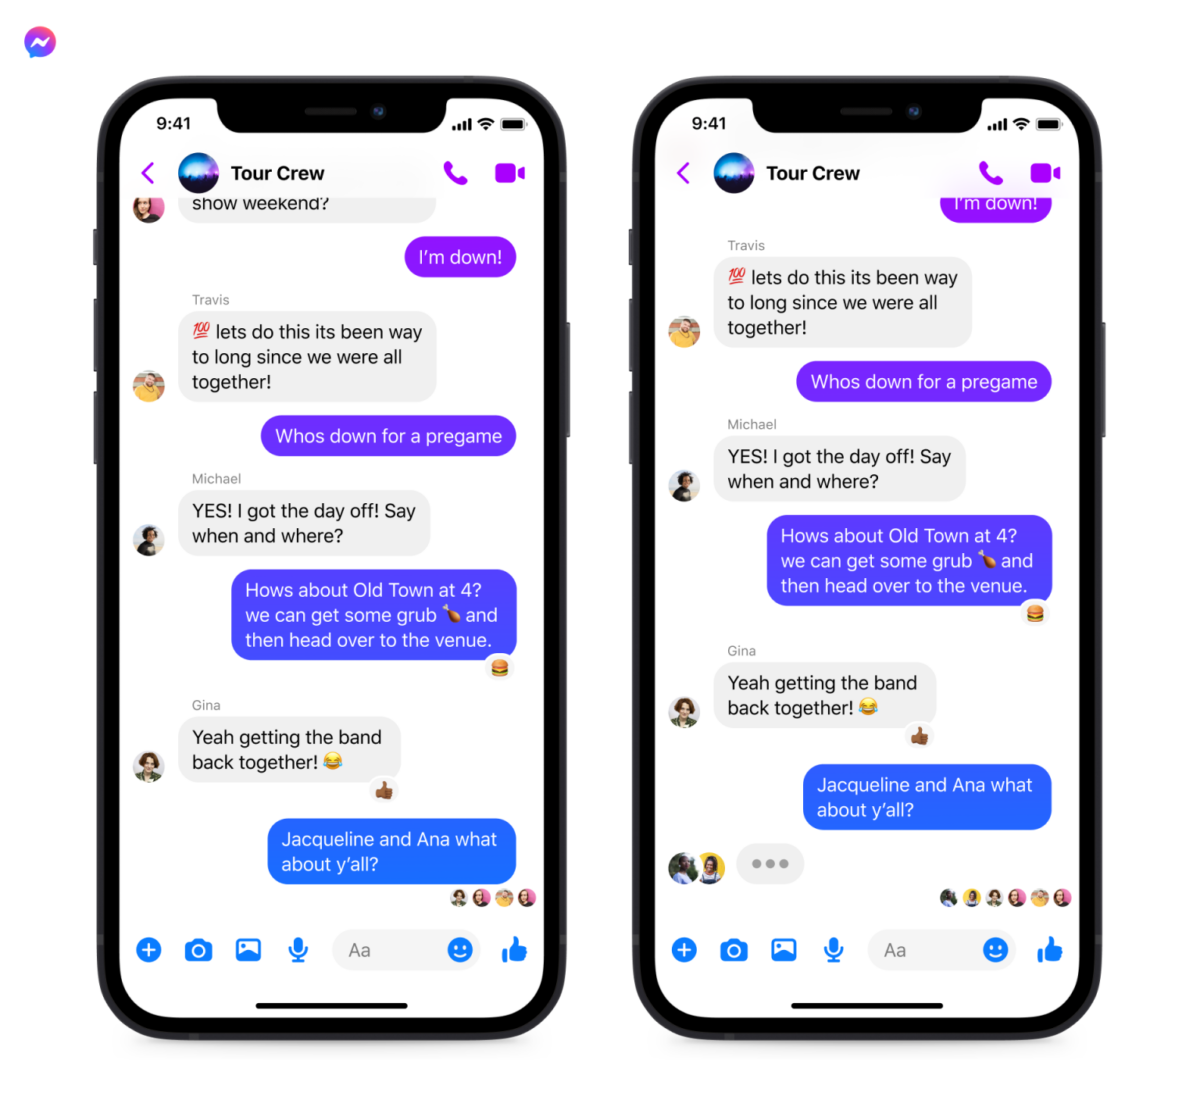 Instagram: Group chat with your friends stuck on Messenger